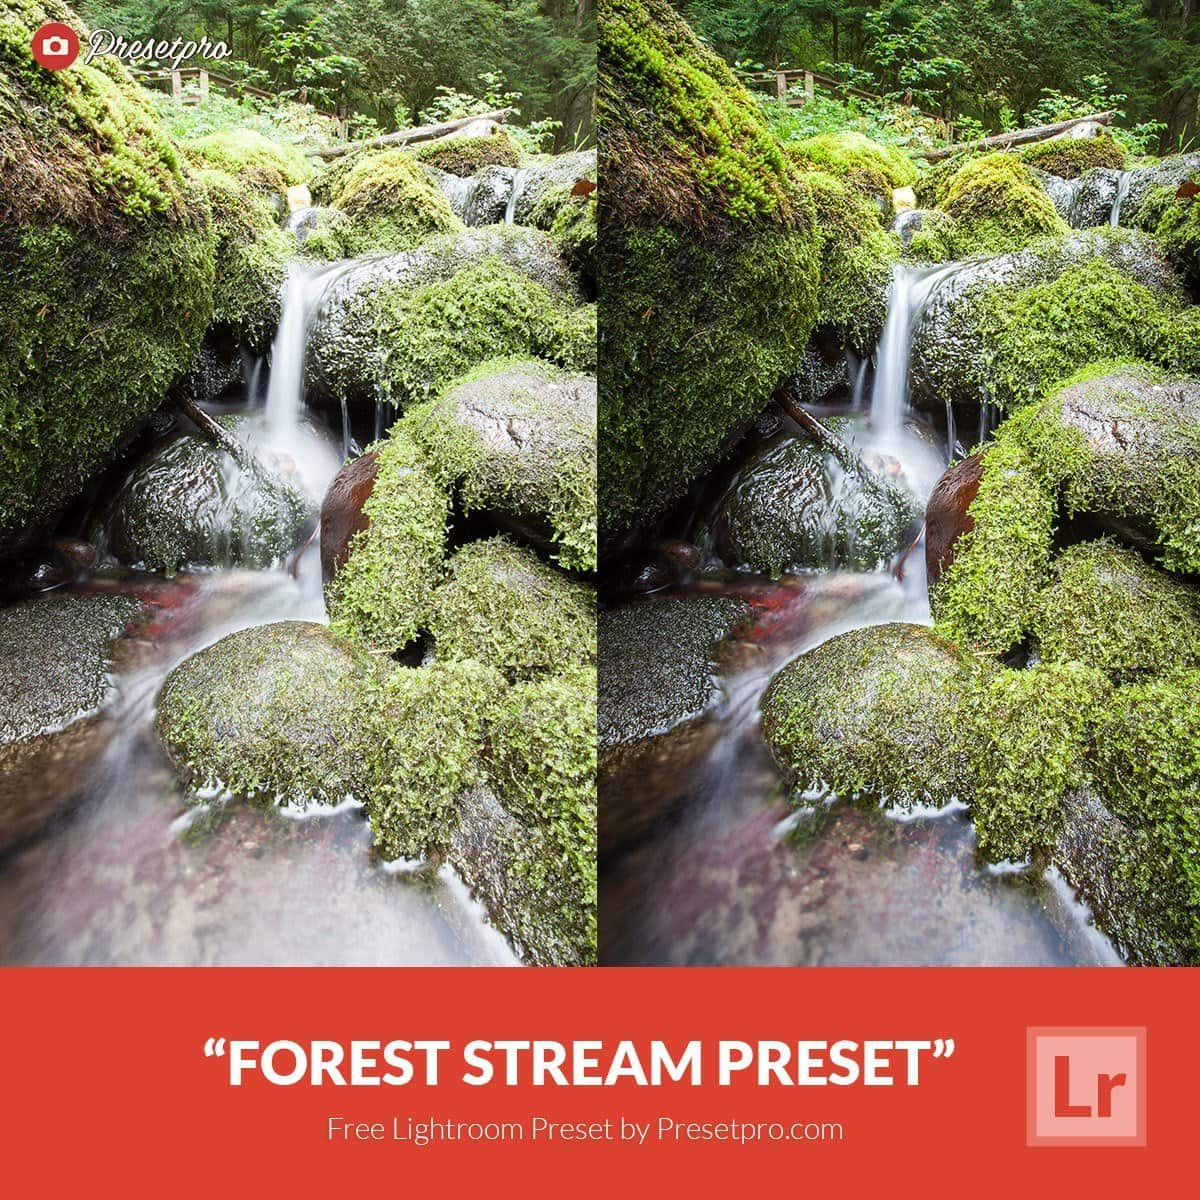 Free-Lightroom-Preset-Forest-Stream